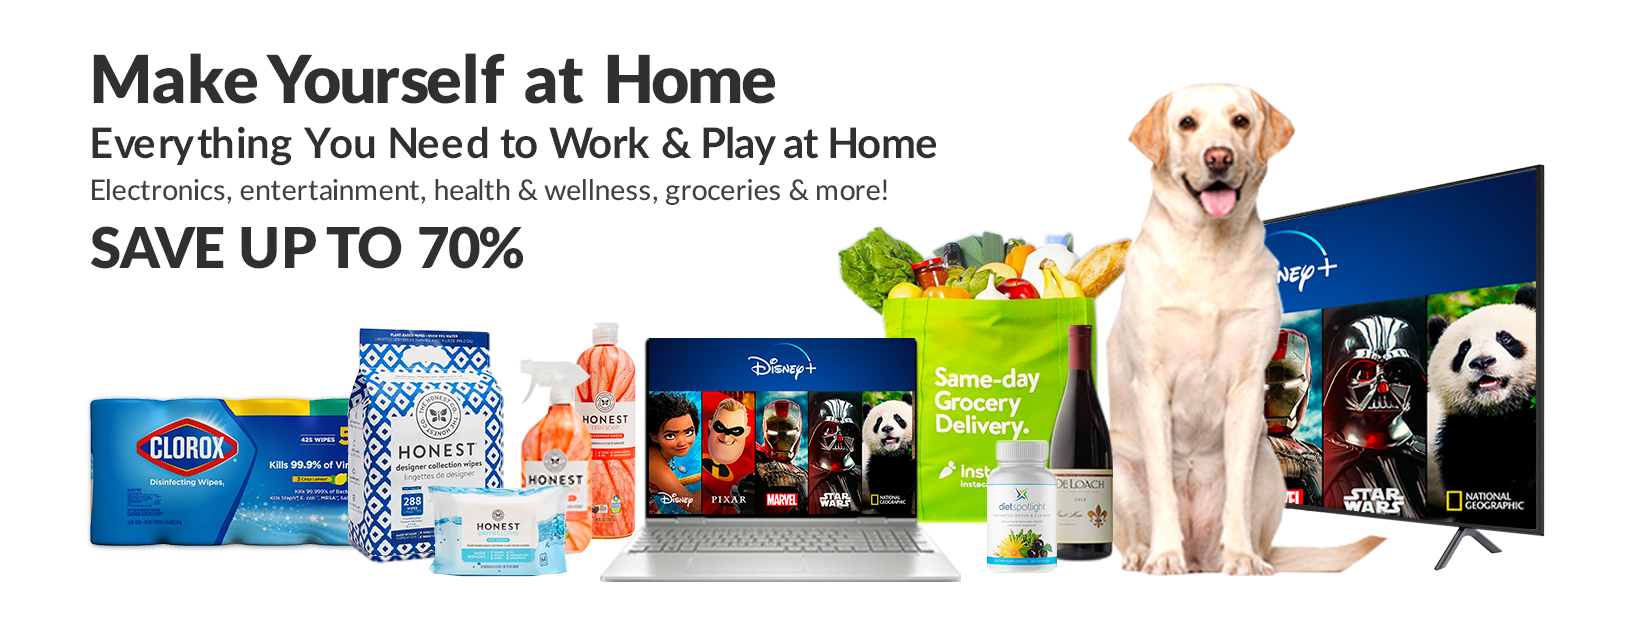 an Image of various products with text that says Make yourself at home everything you need to work and play at home. Electronics entertainment health and wellness groceries and more. Save up to 70%